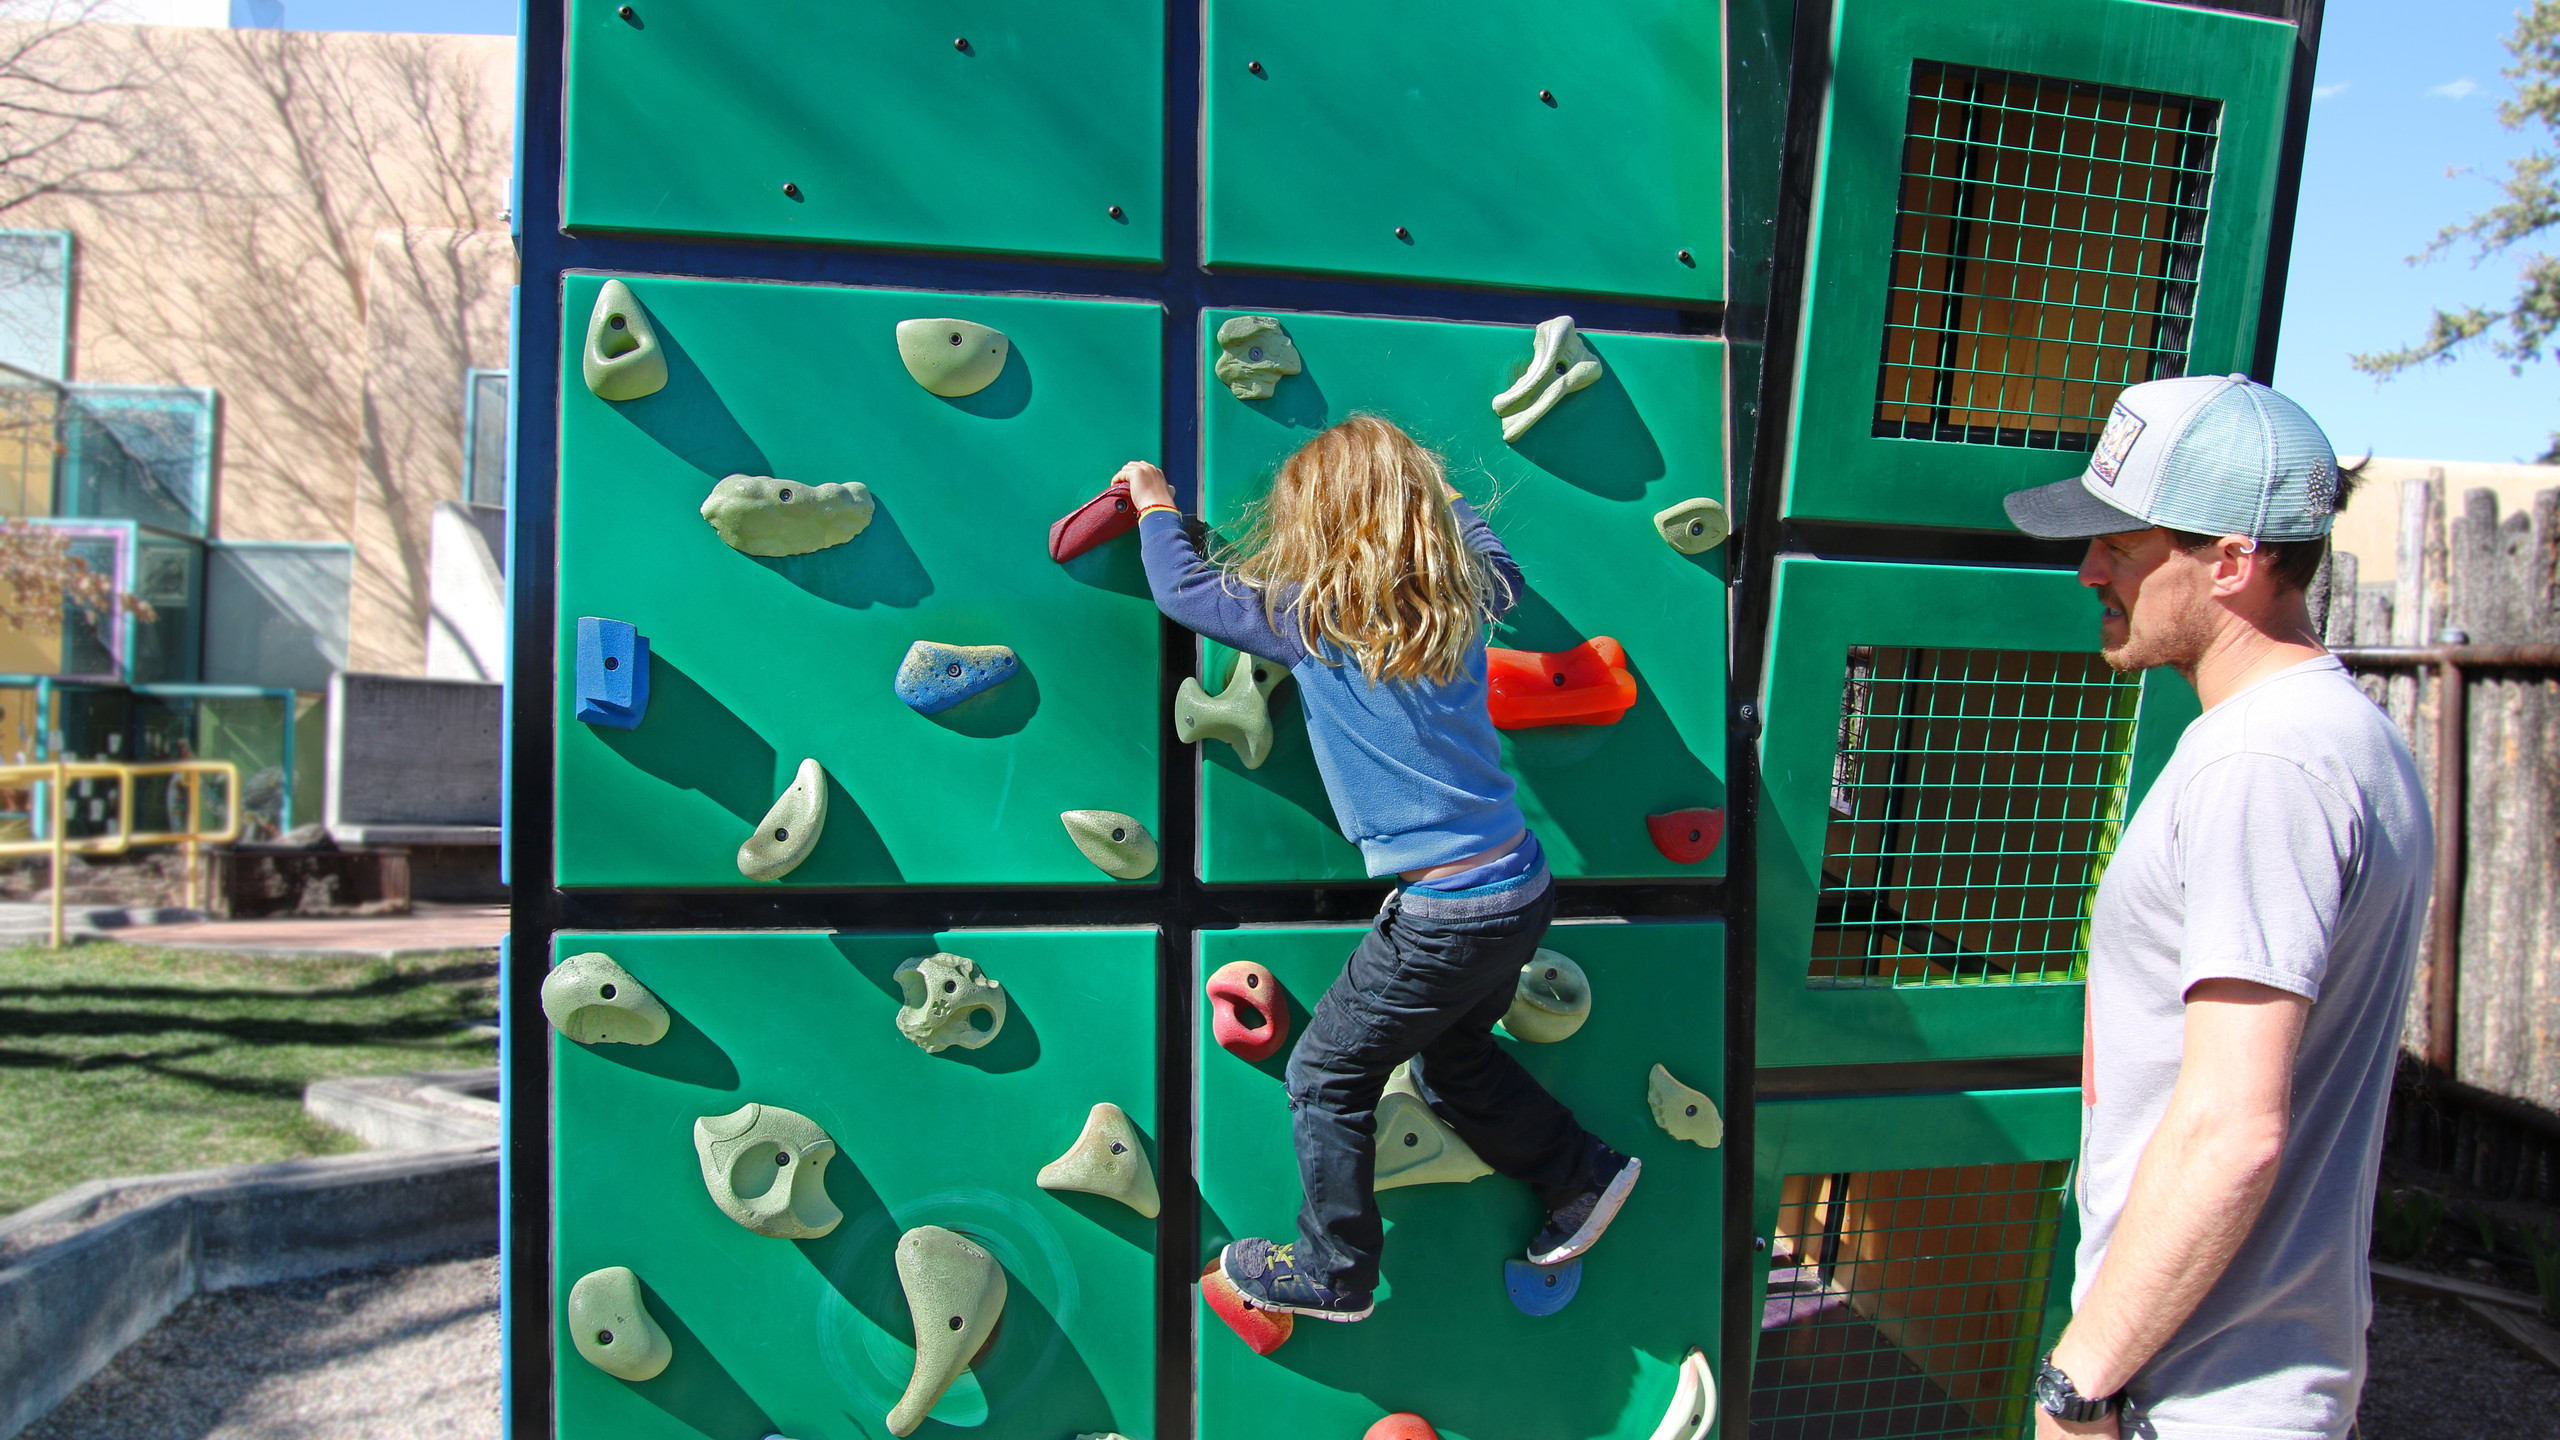 Blonde boy in blue shirt and black pants climbing the green climbing wall at the Santa Fe Children's Museum while his dad spots him